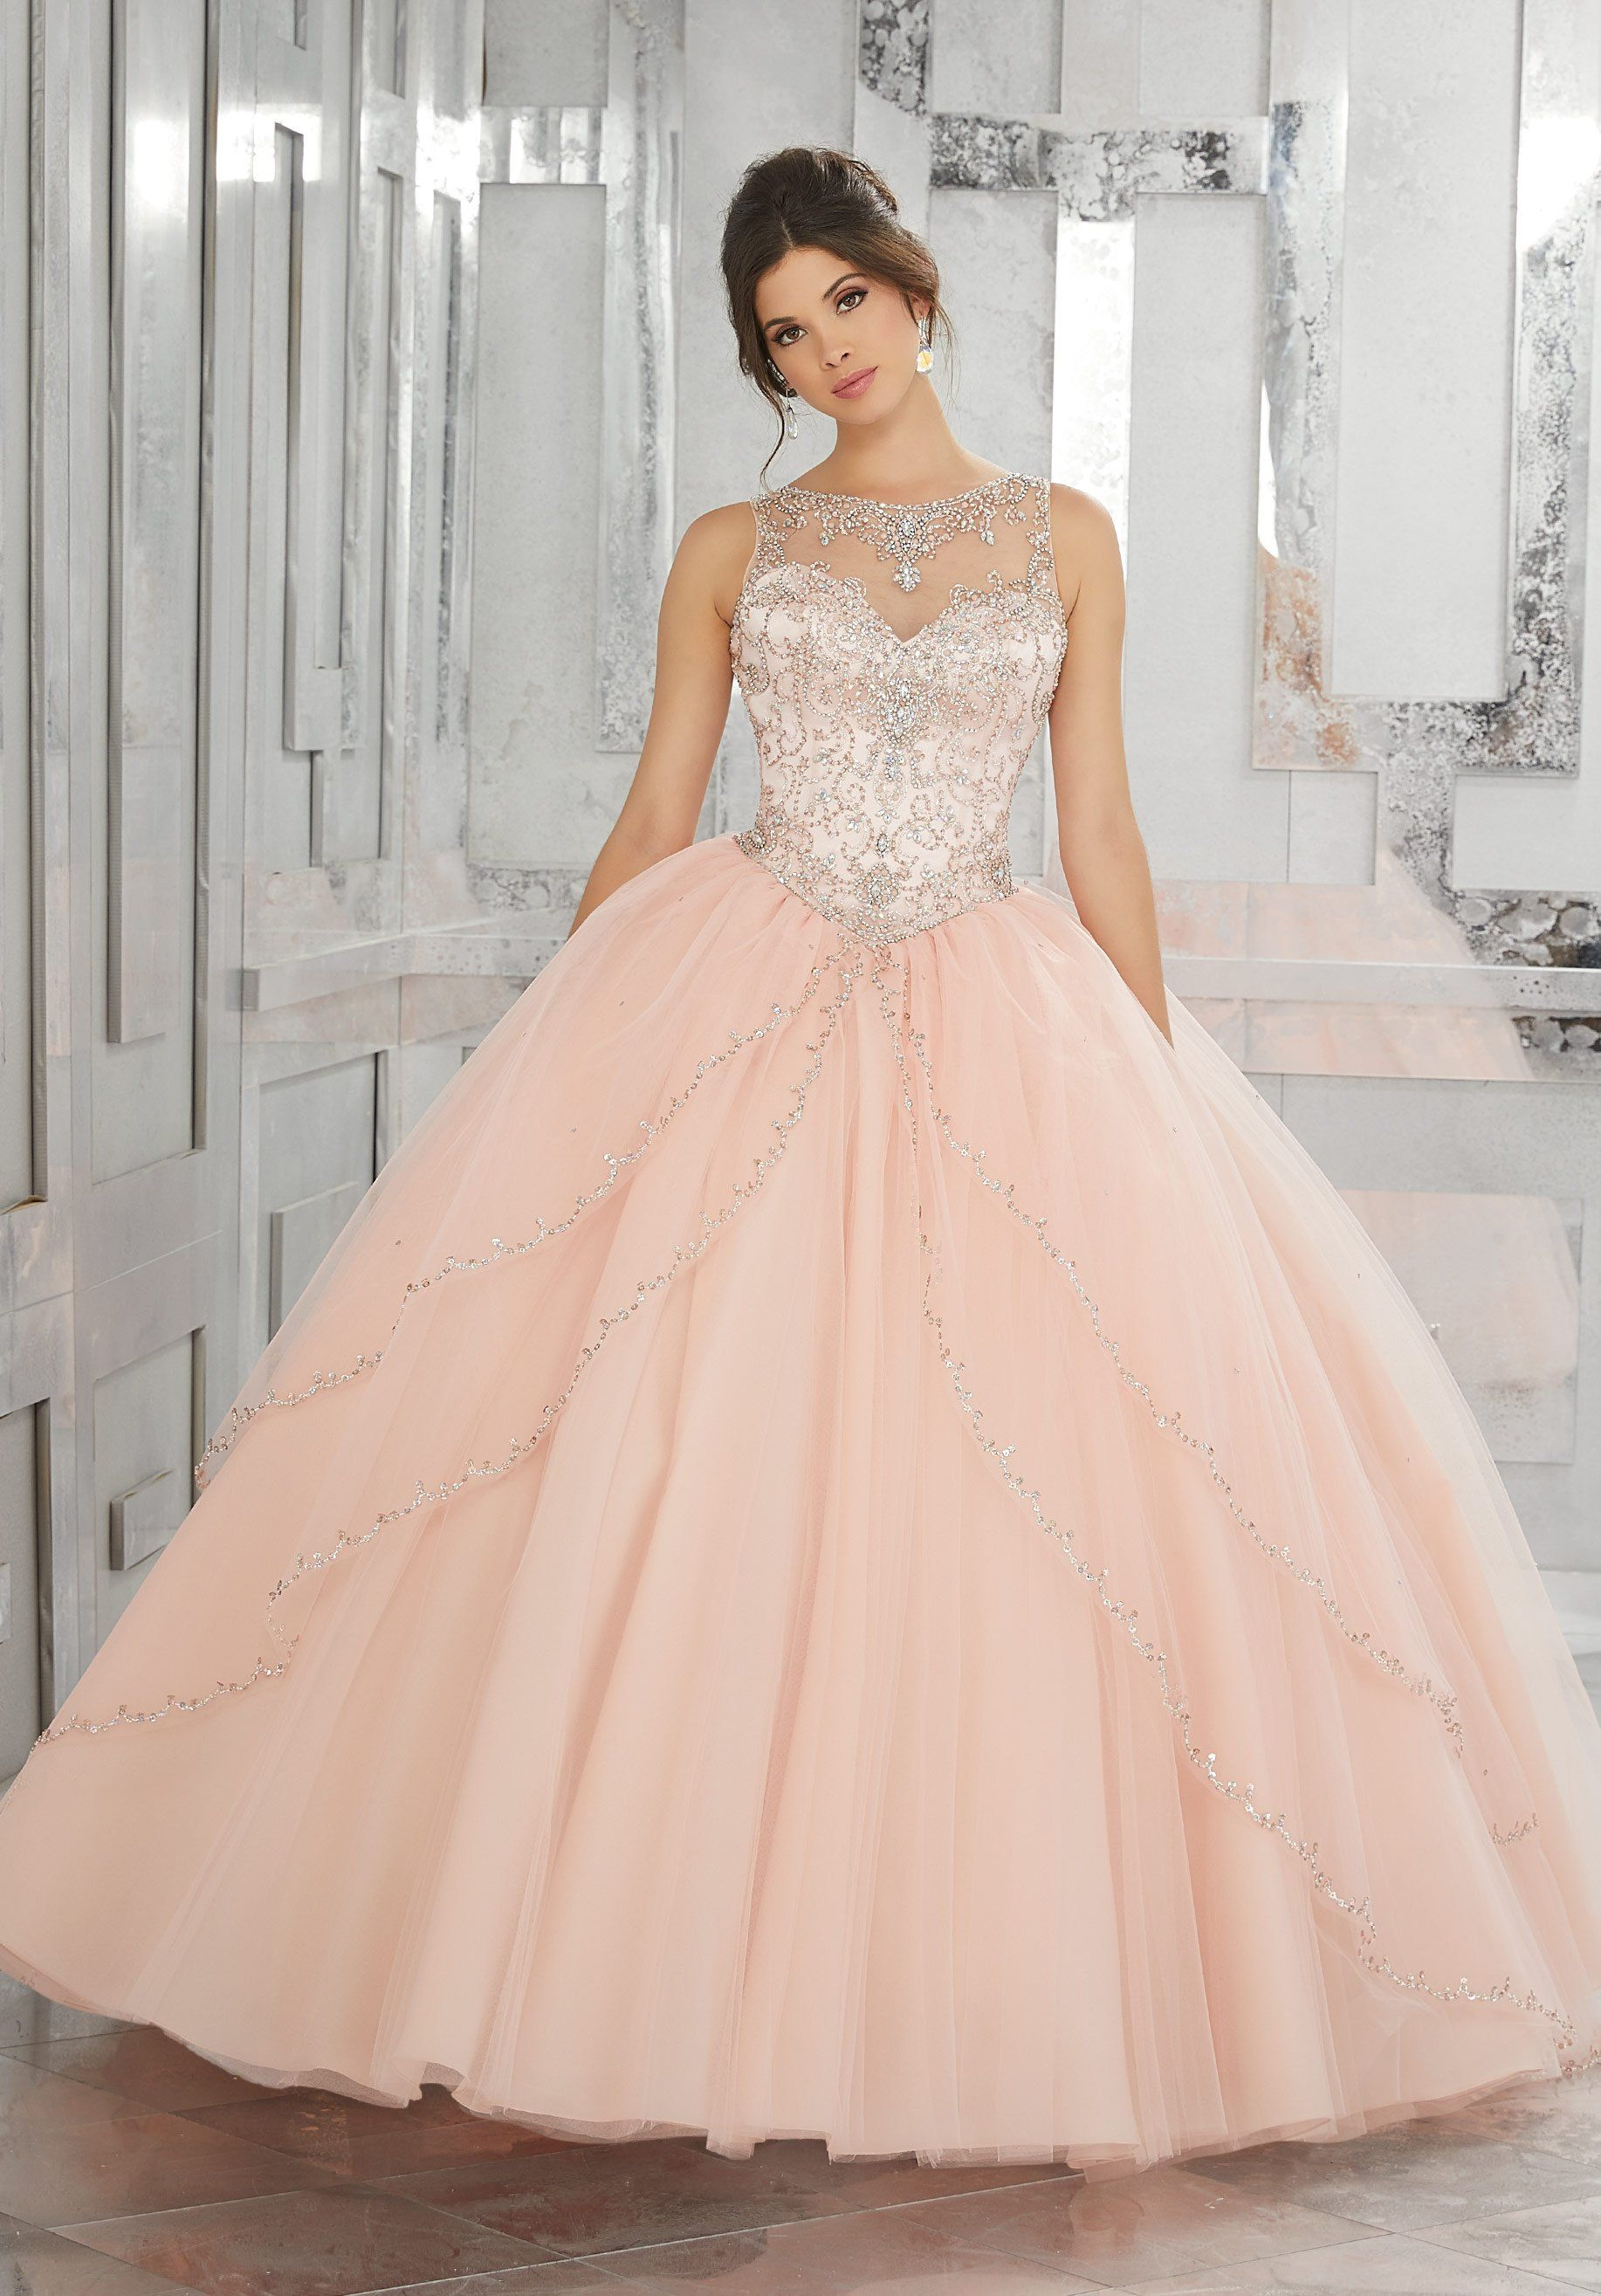 d2c307e8659 Beaded Sleeveless Quinceanera Dress by Mori Lee Vizcaya 89127 in ...